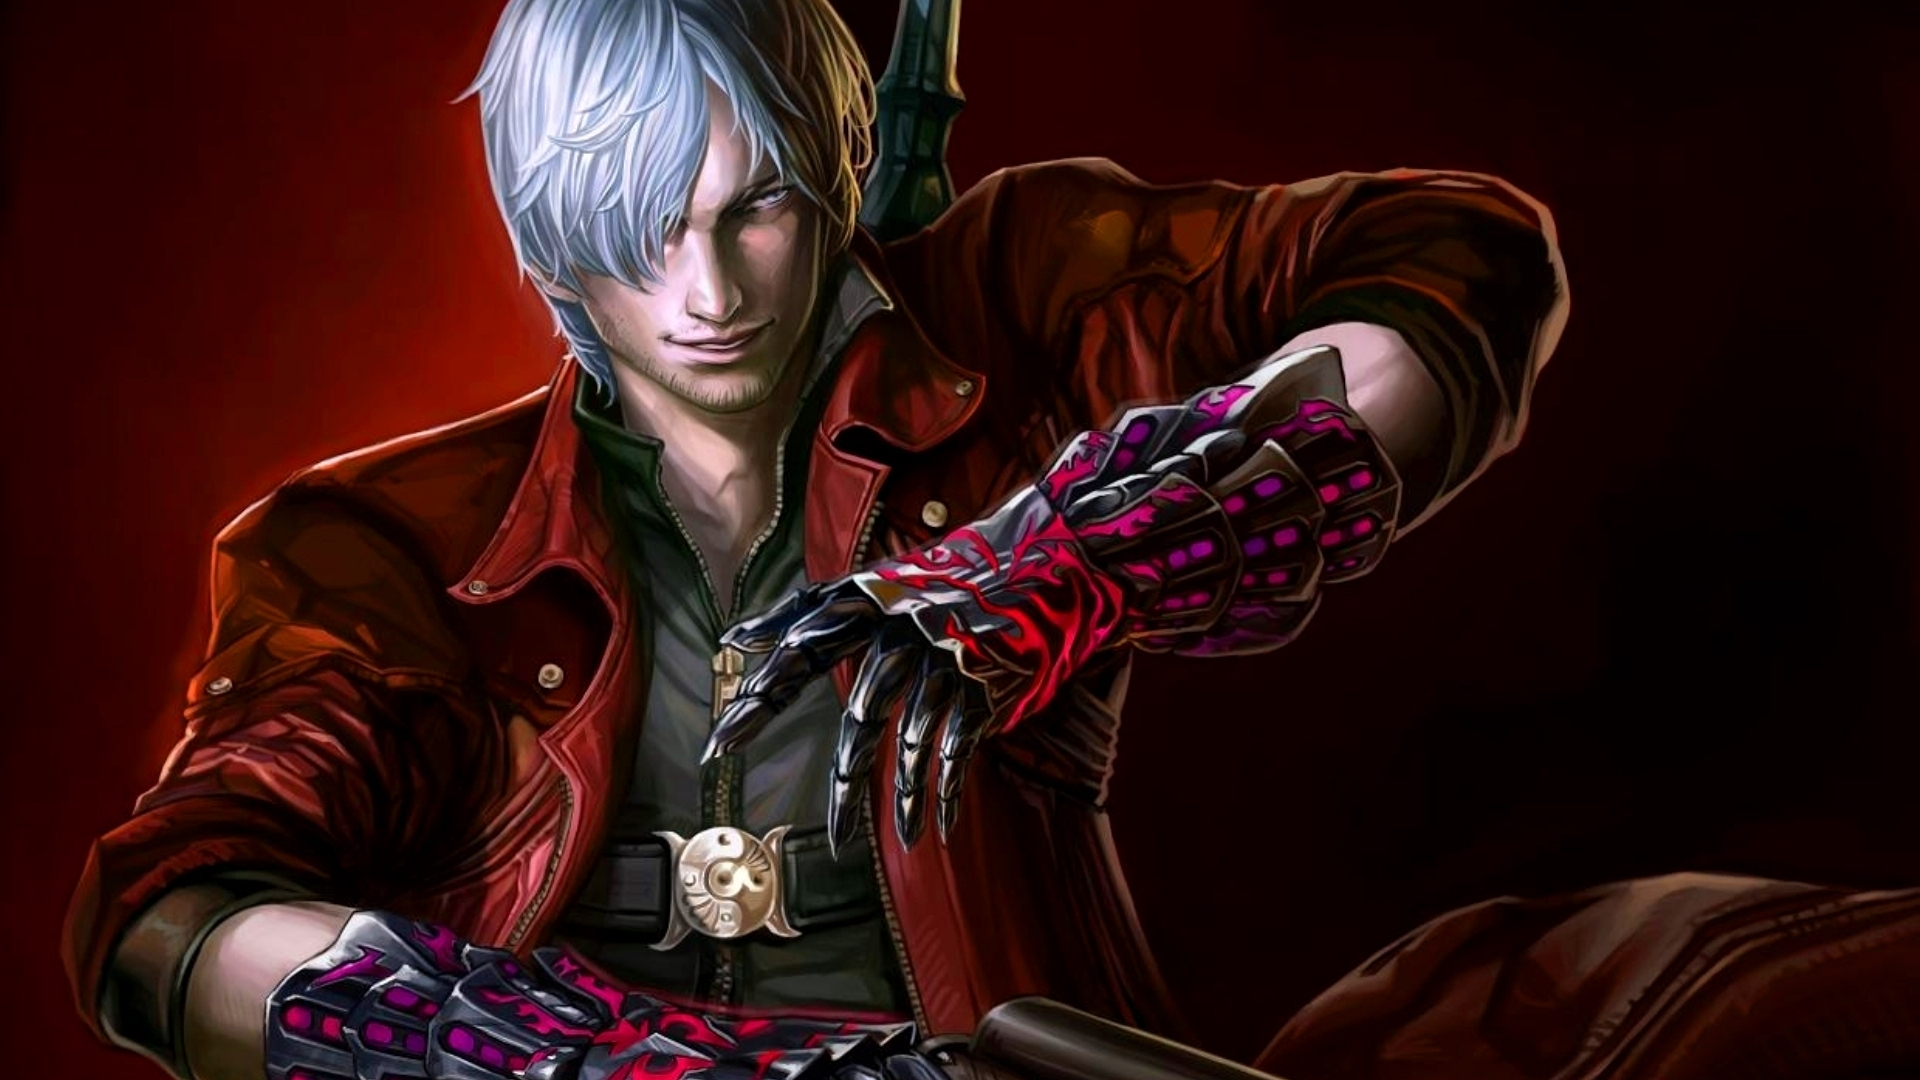 devil may cry 4 wallpaper 5 | wallpapersbq